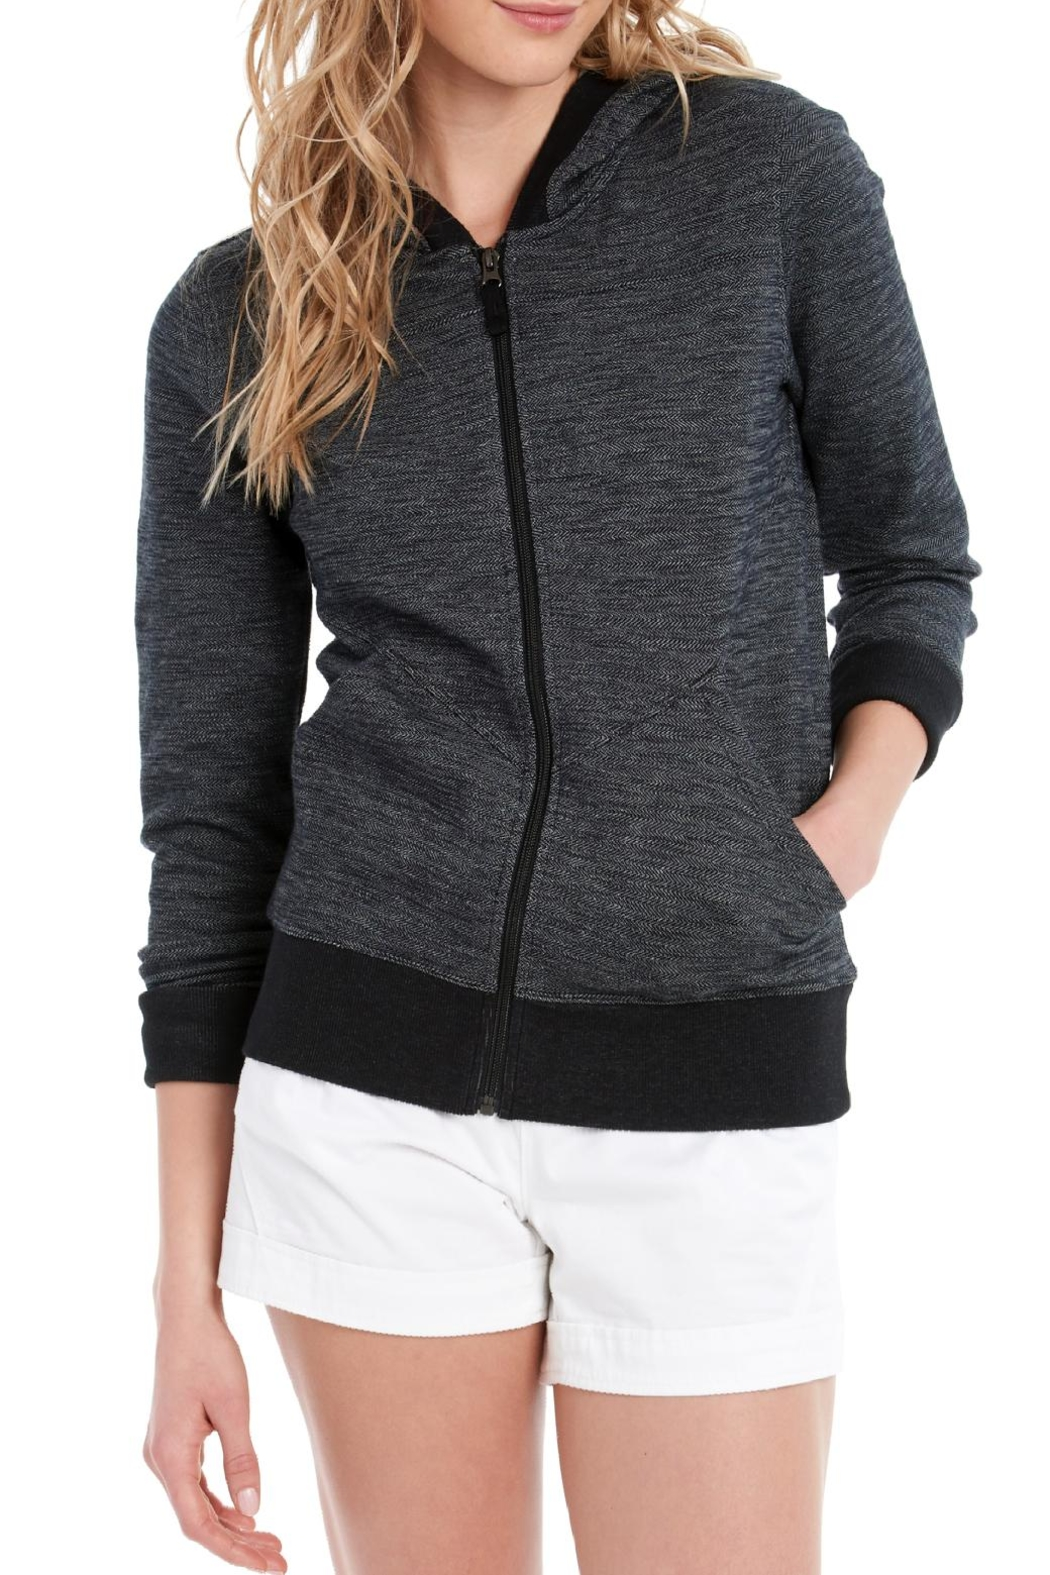 Lole India Hooded Cardigan - Front Cropped Image